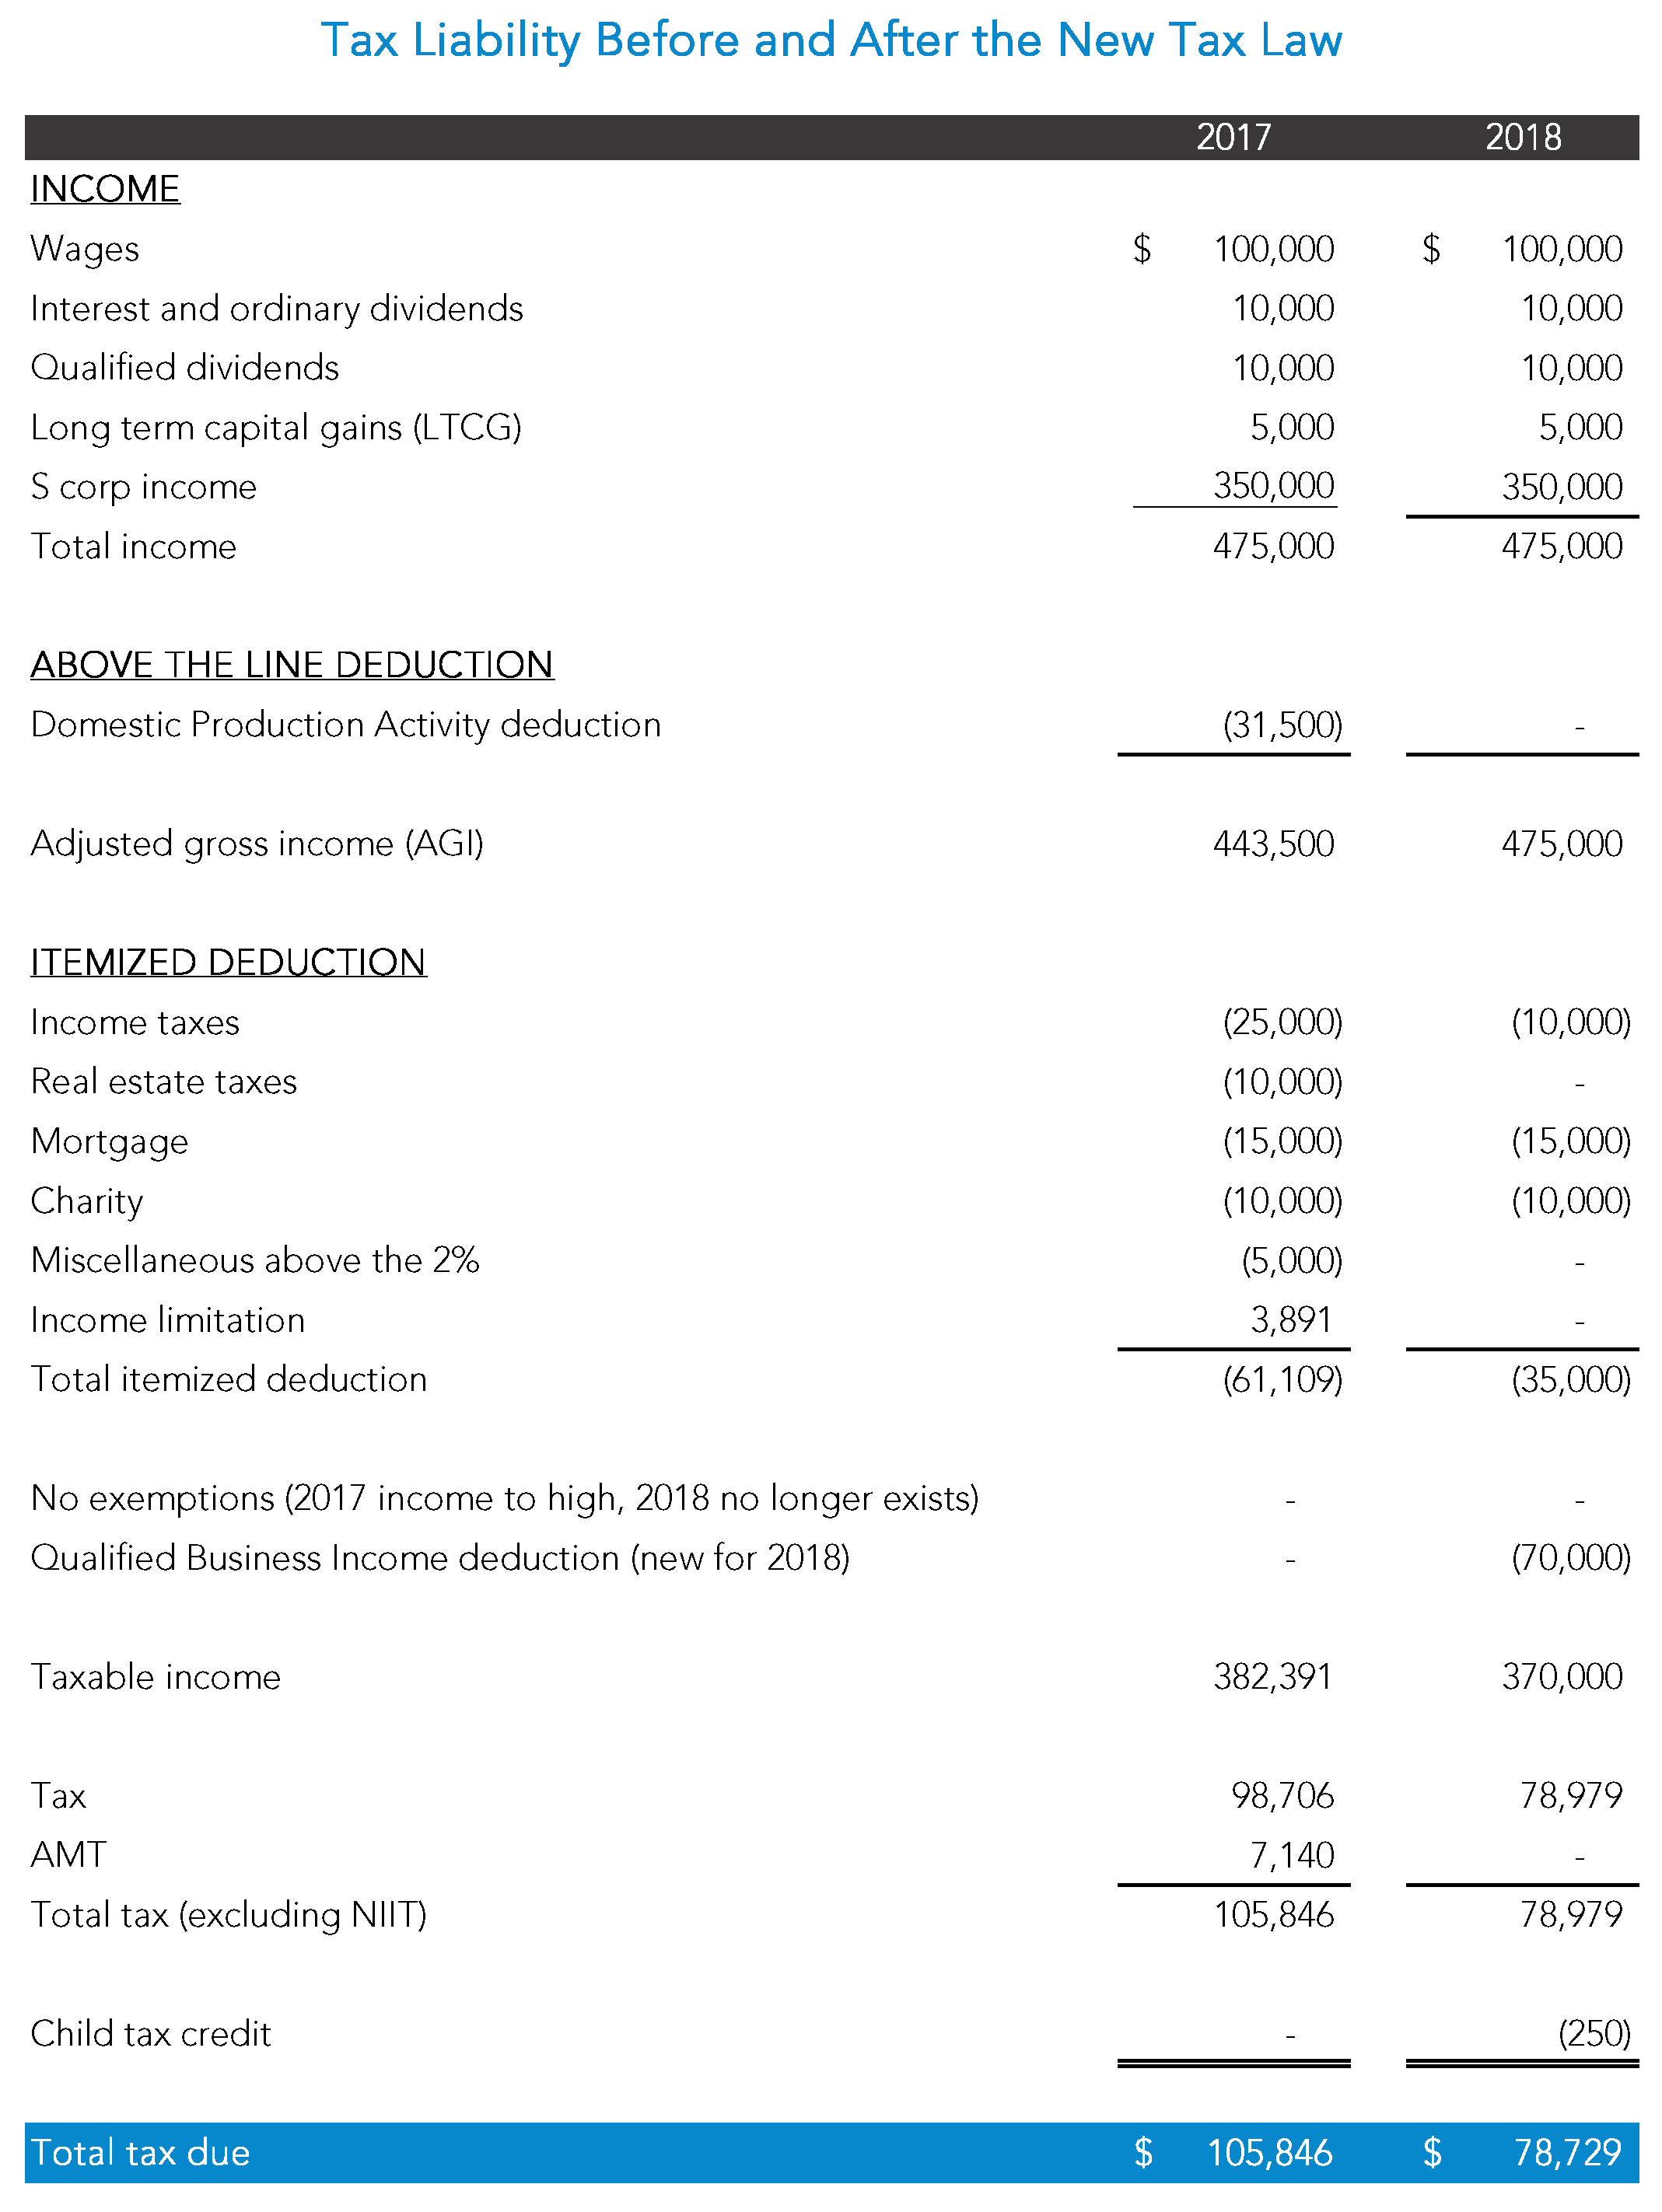 Comparison Before After New Tax Law